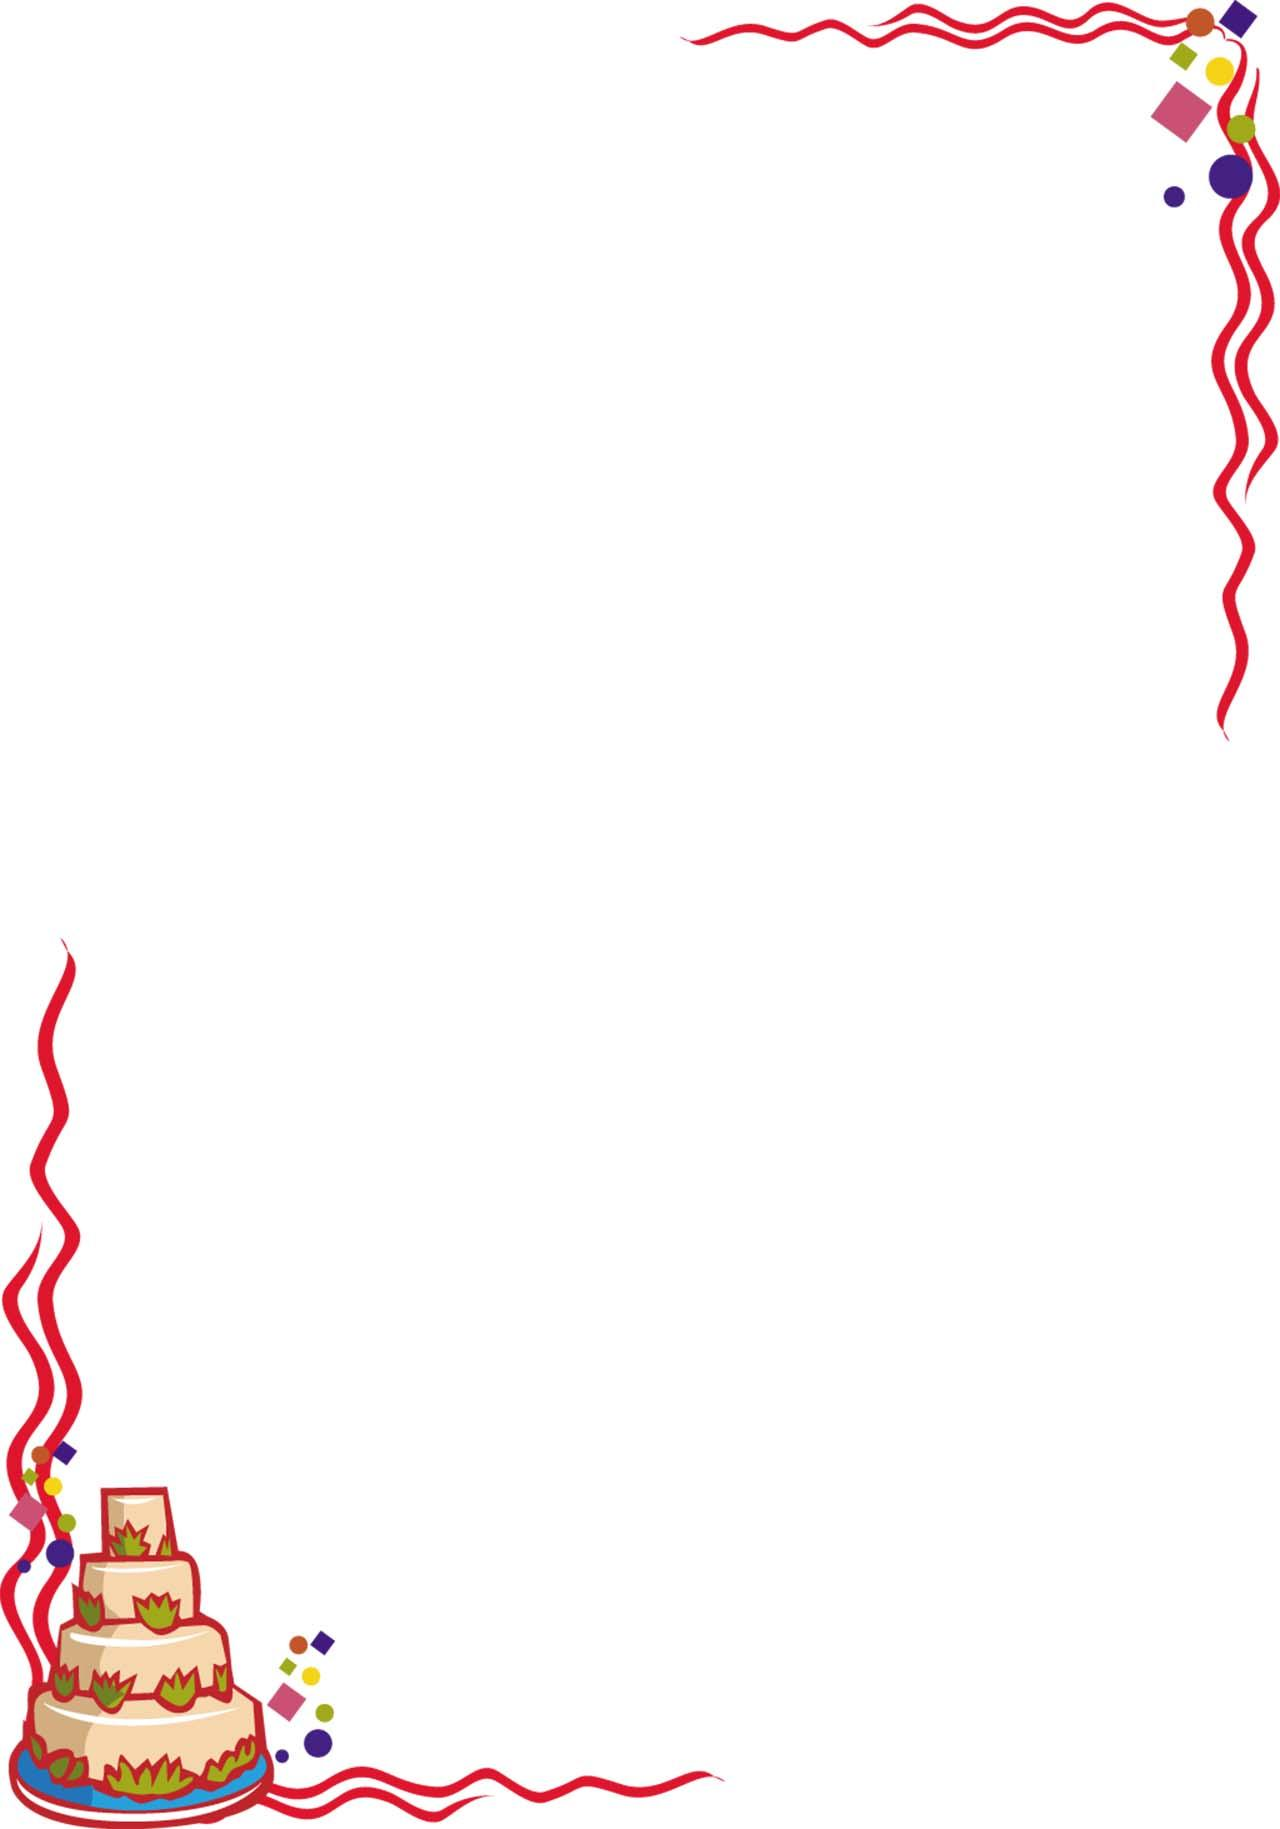 Cake clipart boarder, Cake boarder Transparent FREE for.